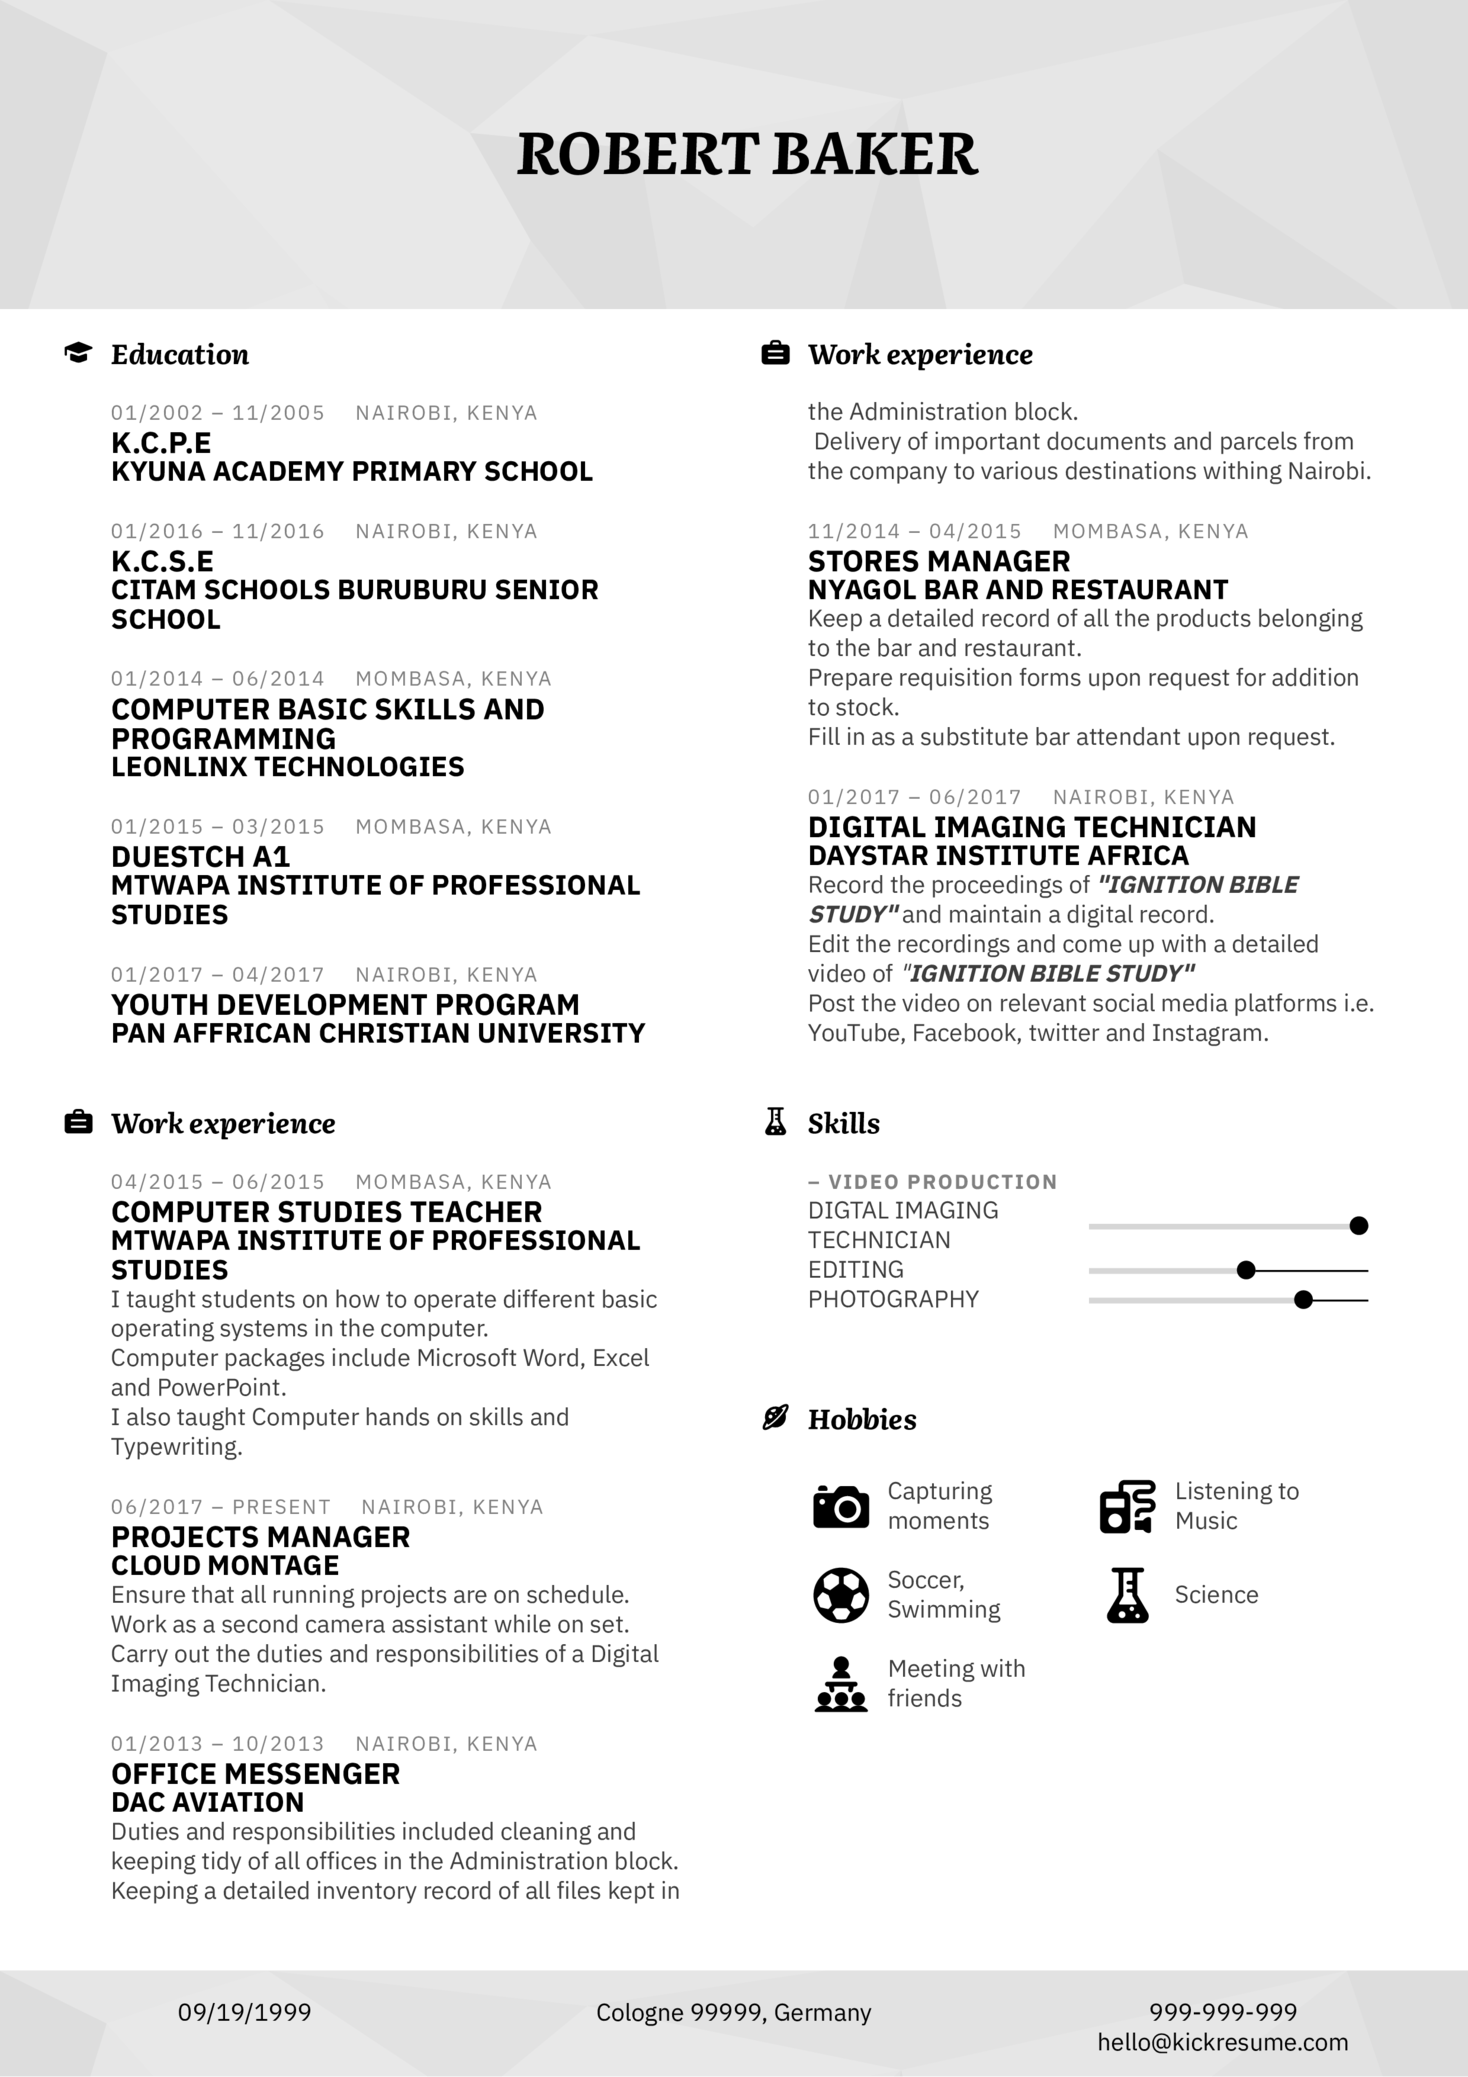 Service Manager Resume Sample (Part 1)